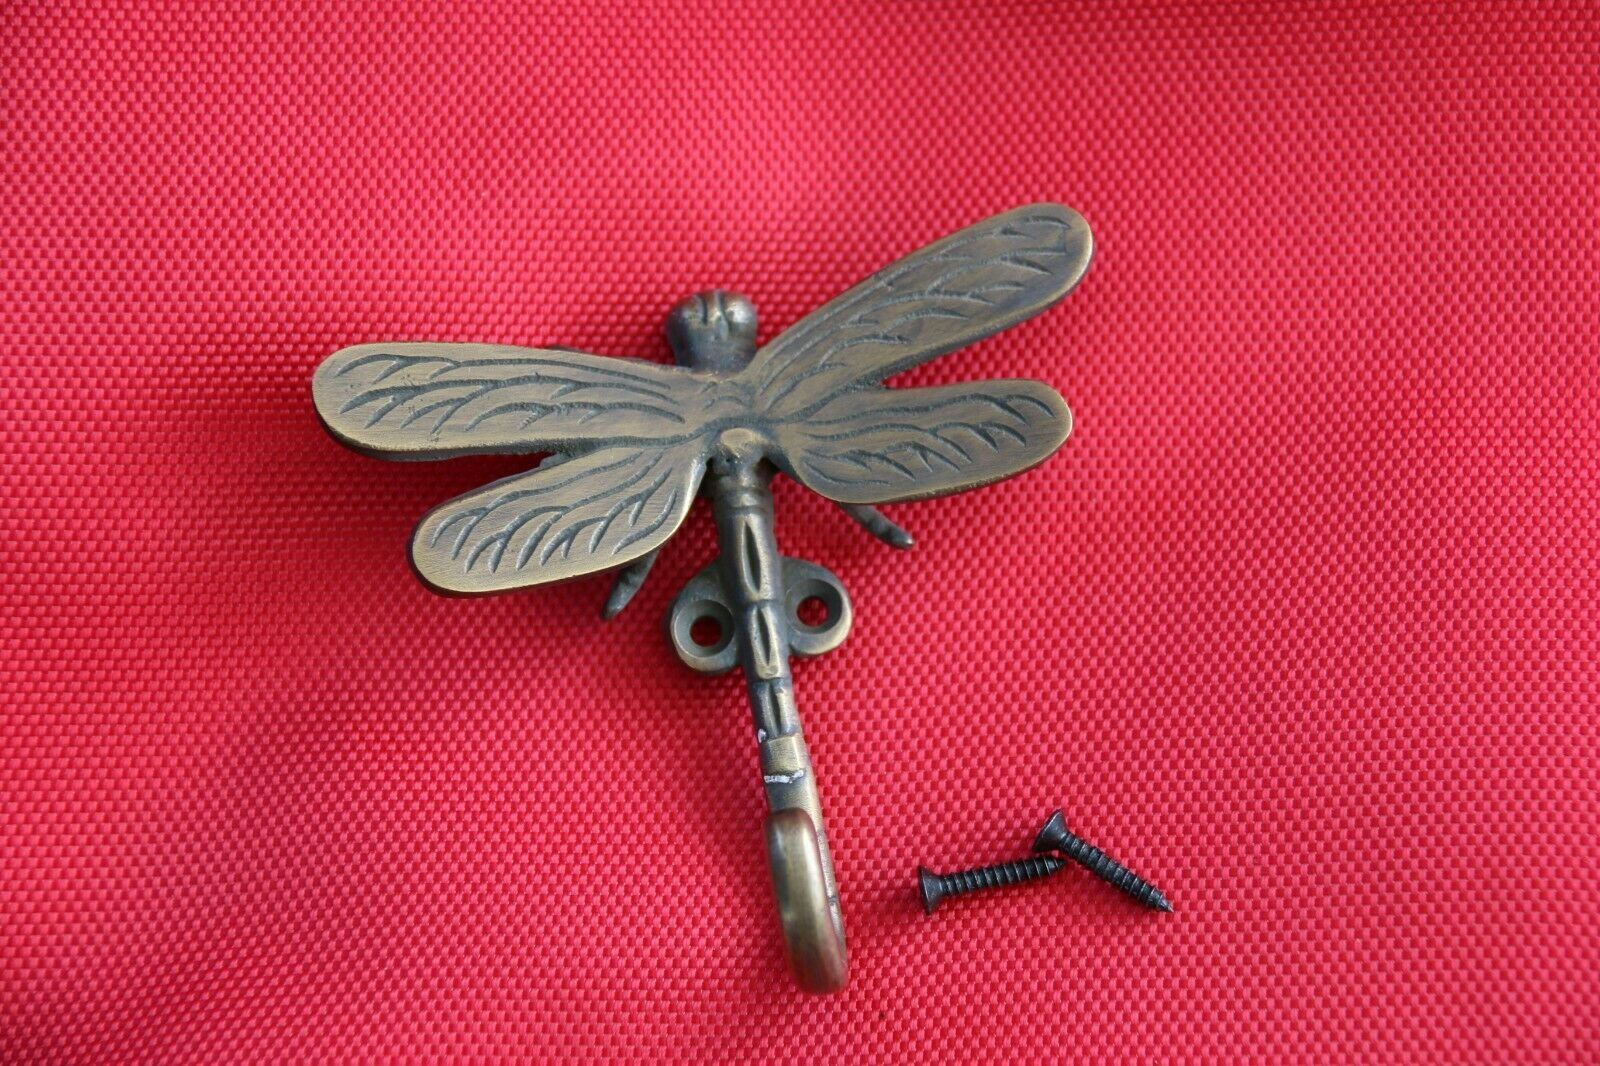 New BRASS Dragonfly Hook - Decorative Wall Hook - Furniture Fittings & Acces.